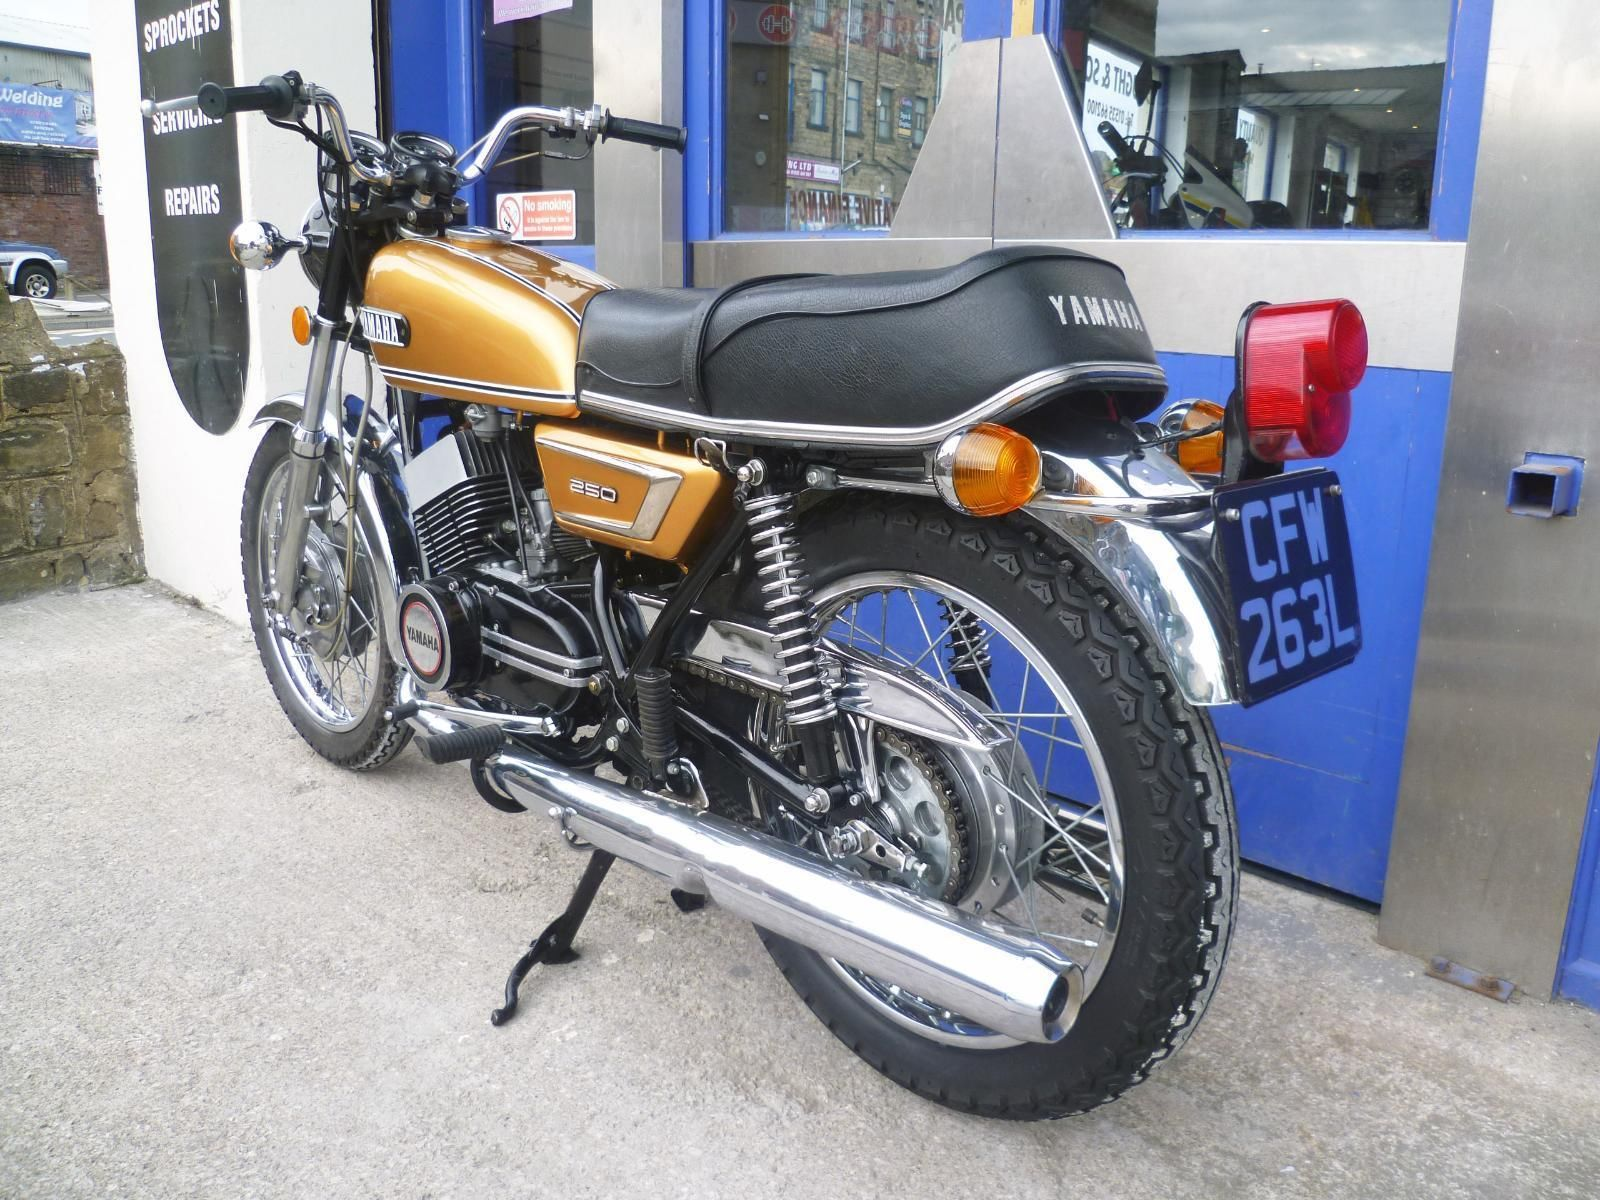 REDUCED 1972 250 cc Yamaha YDS7 Gold Very low Mileage. Tax